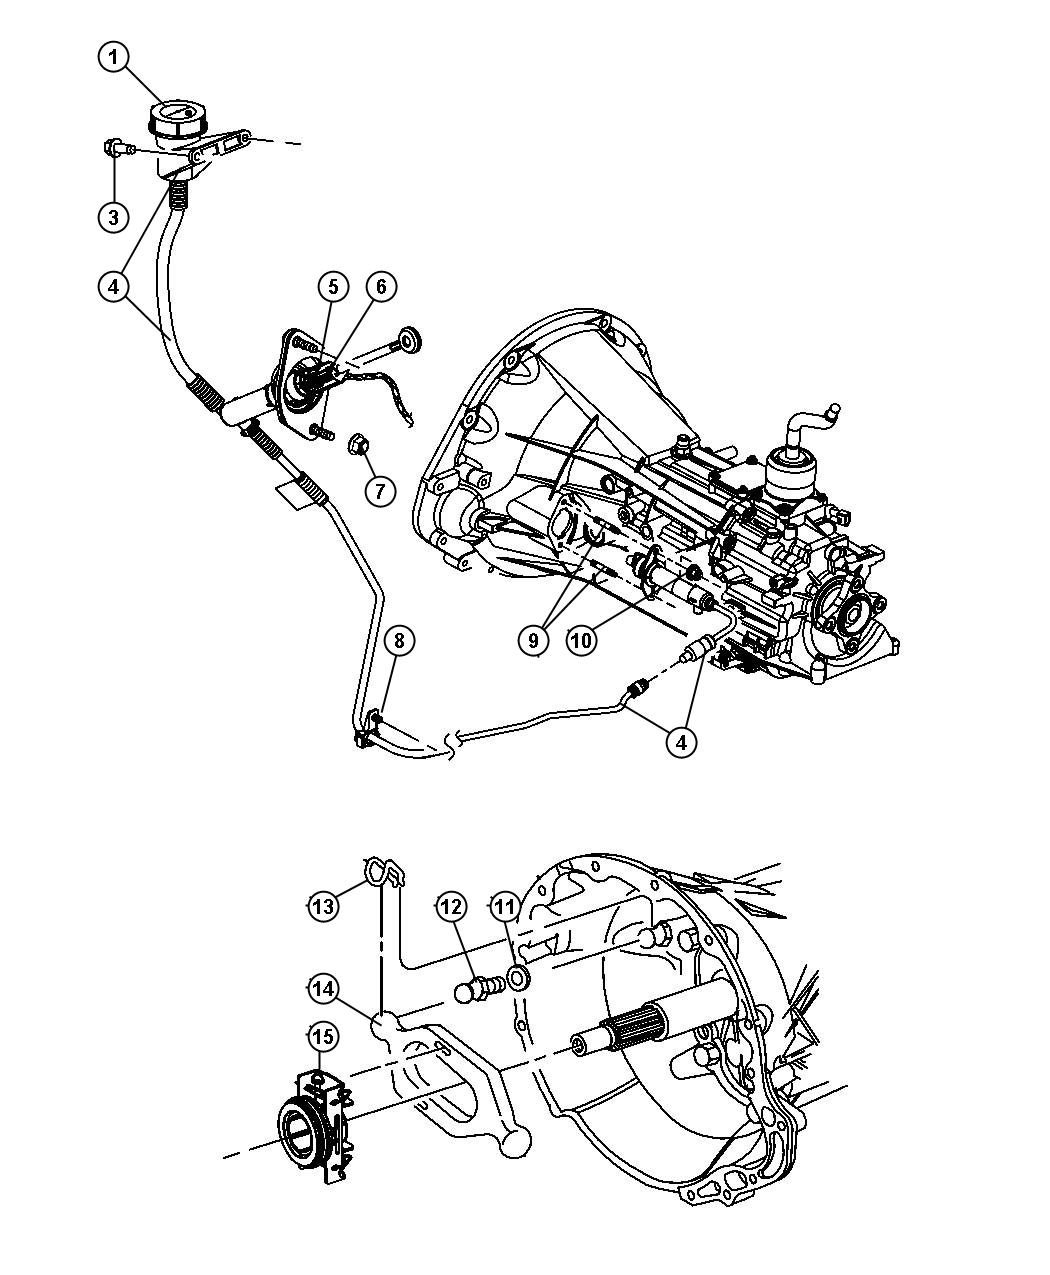 hight resolution of 1998 dodge wiring diagram 2002 dodge wiring diagram wiring 42re wiring jeep 42rle transmission diagrams